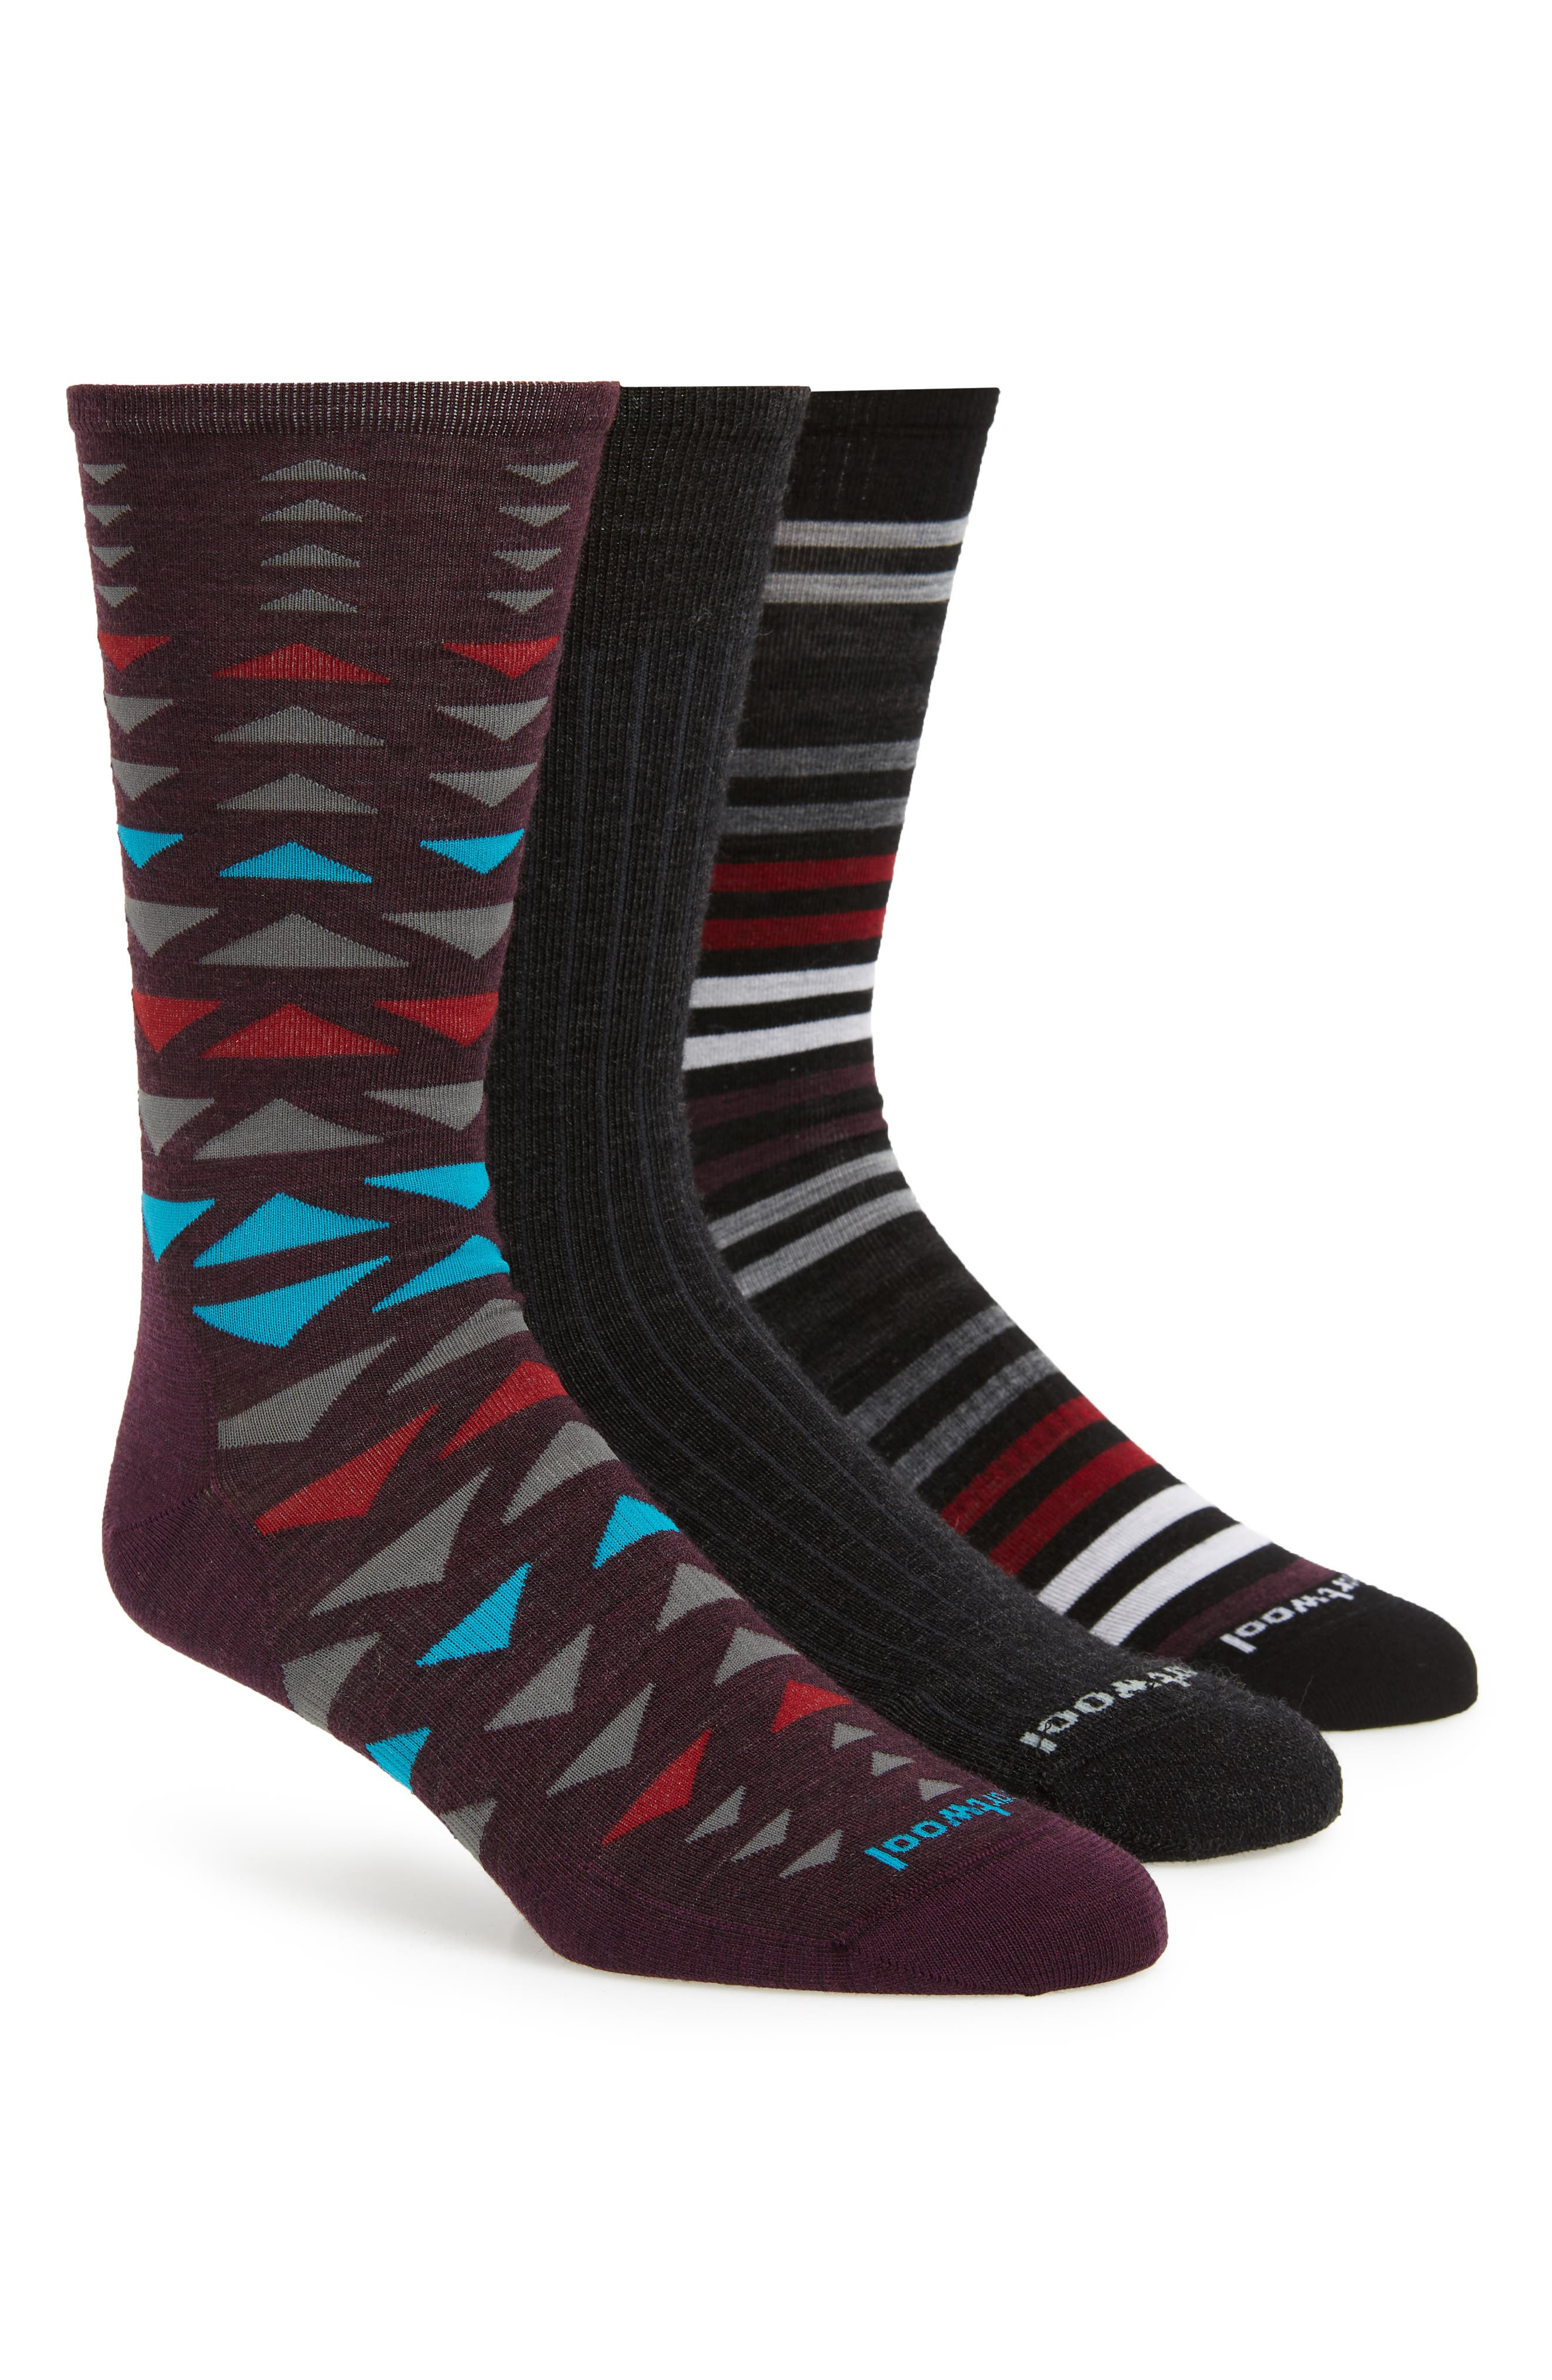 Trio 3-Pack Socks, Main, color, CHARCOAL HEATHER/ TIBETAN RED